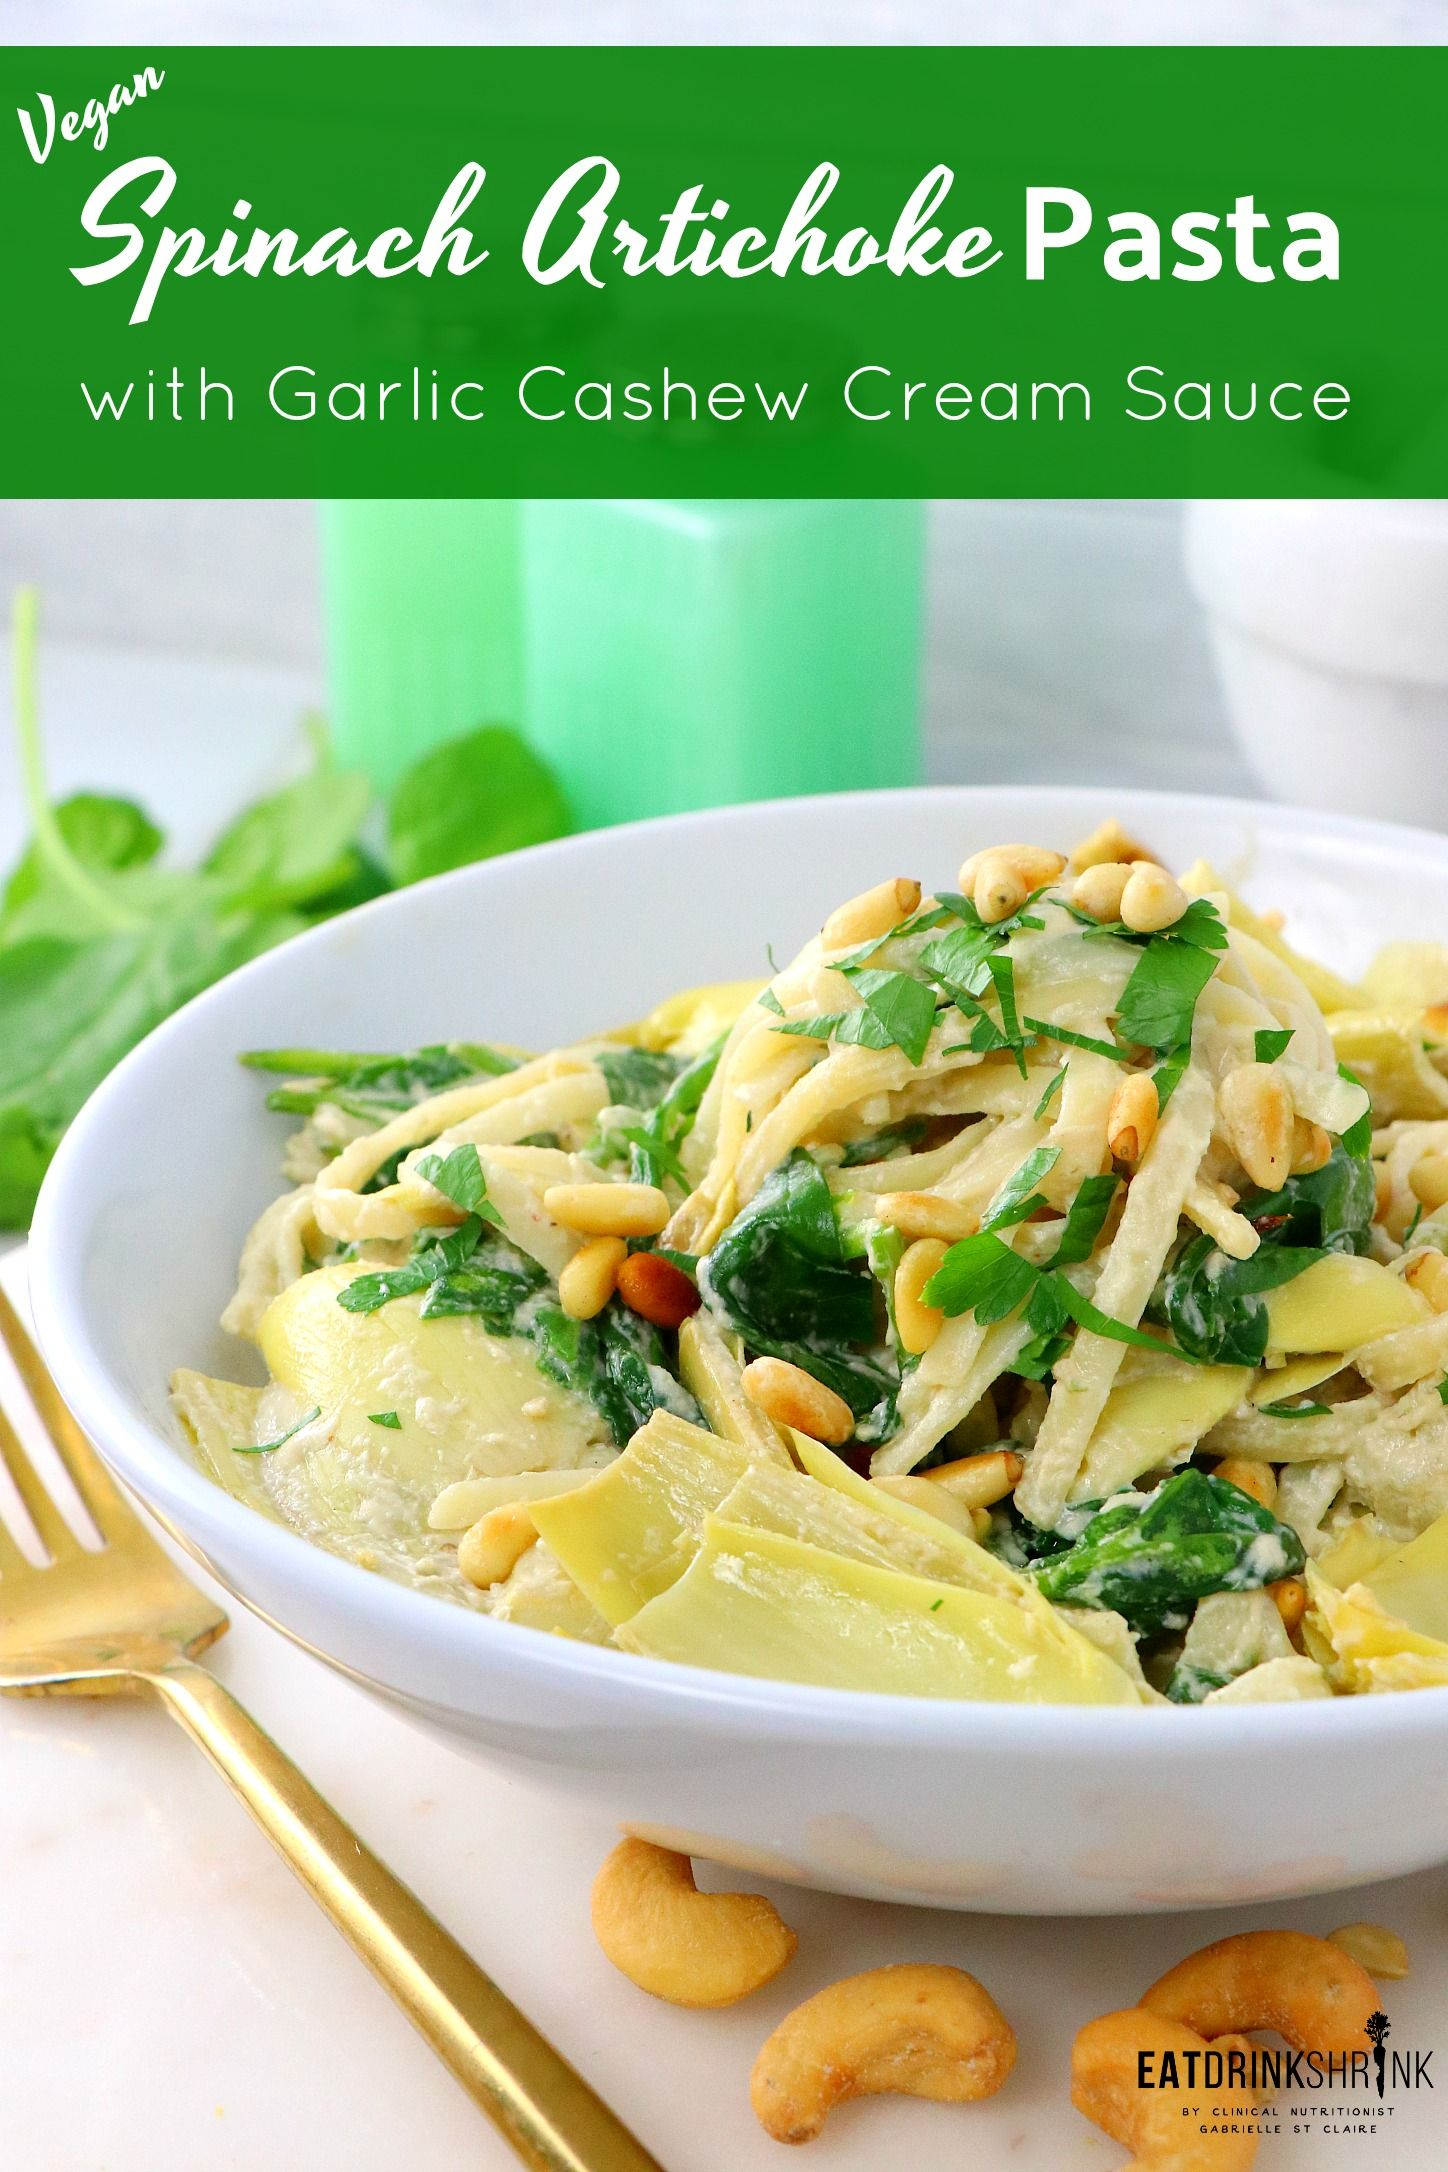 Vegan Spinach Artichoke Pasta With Garlic Cream Sauce